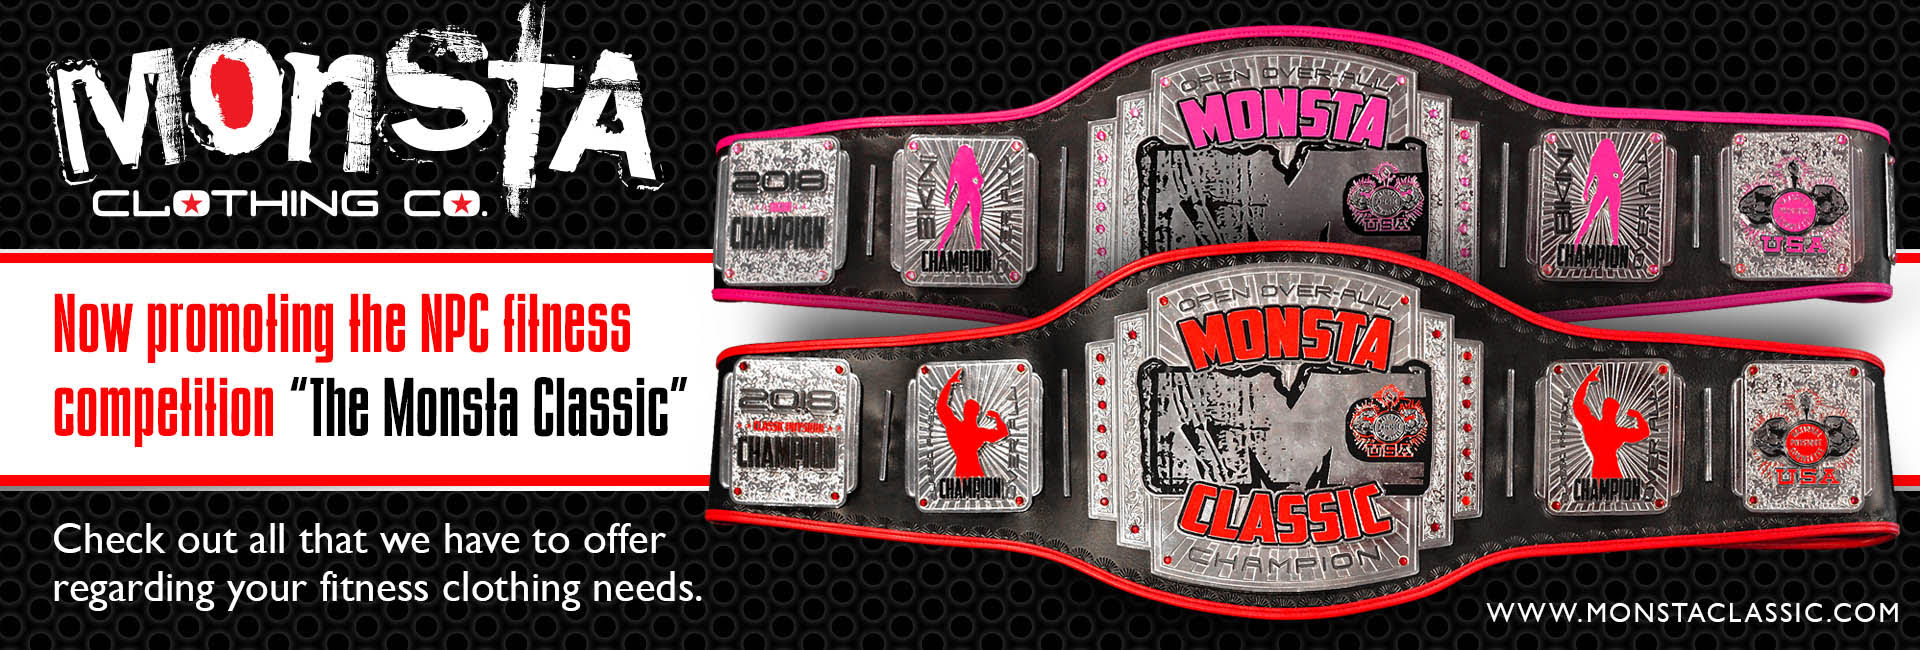 Monsta Clothing and ProAmBelts team up to bring you the worlds greatest custom title championship belts and clothing